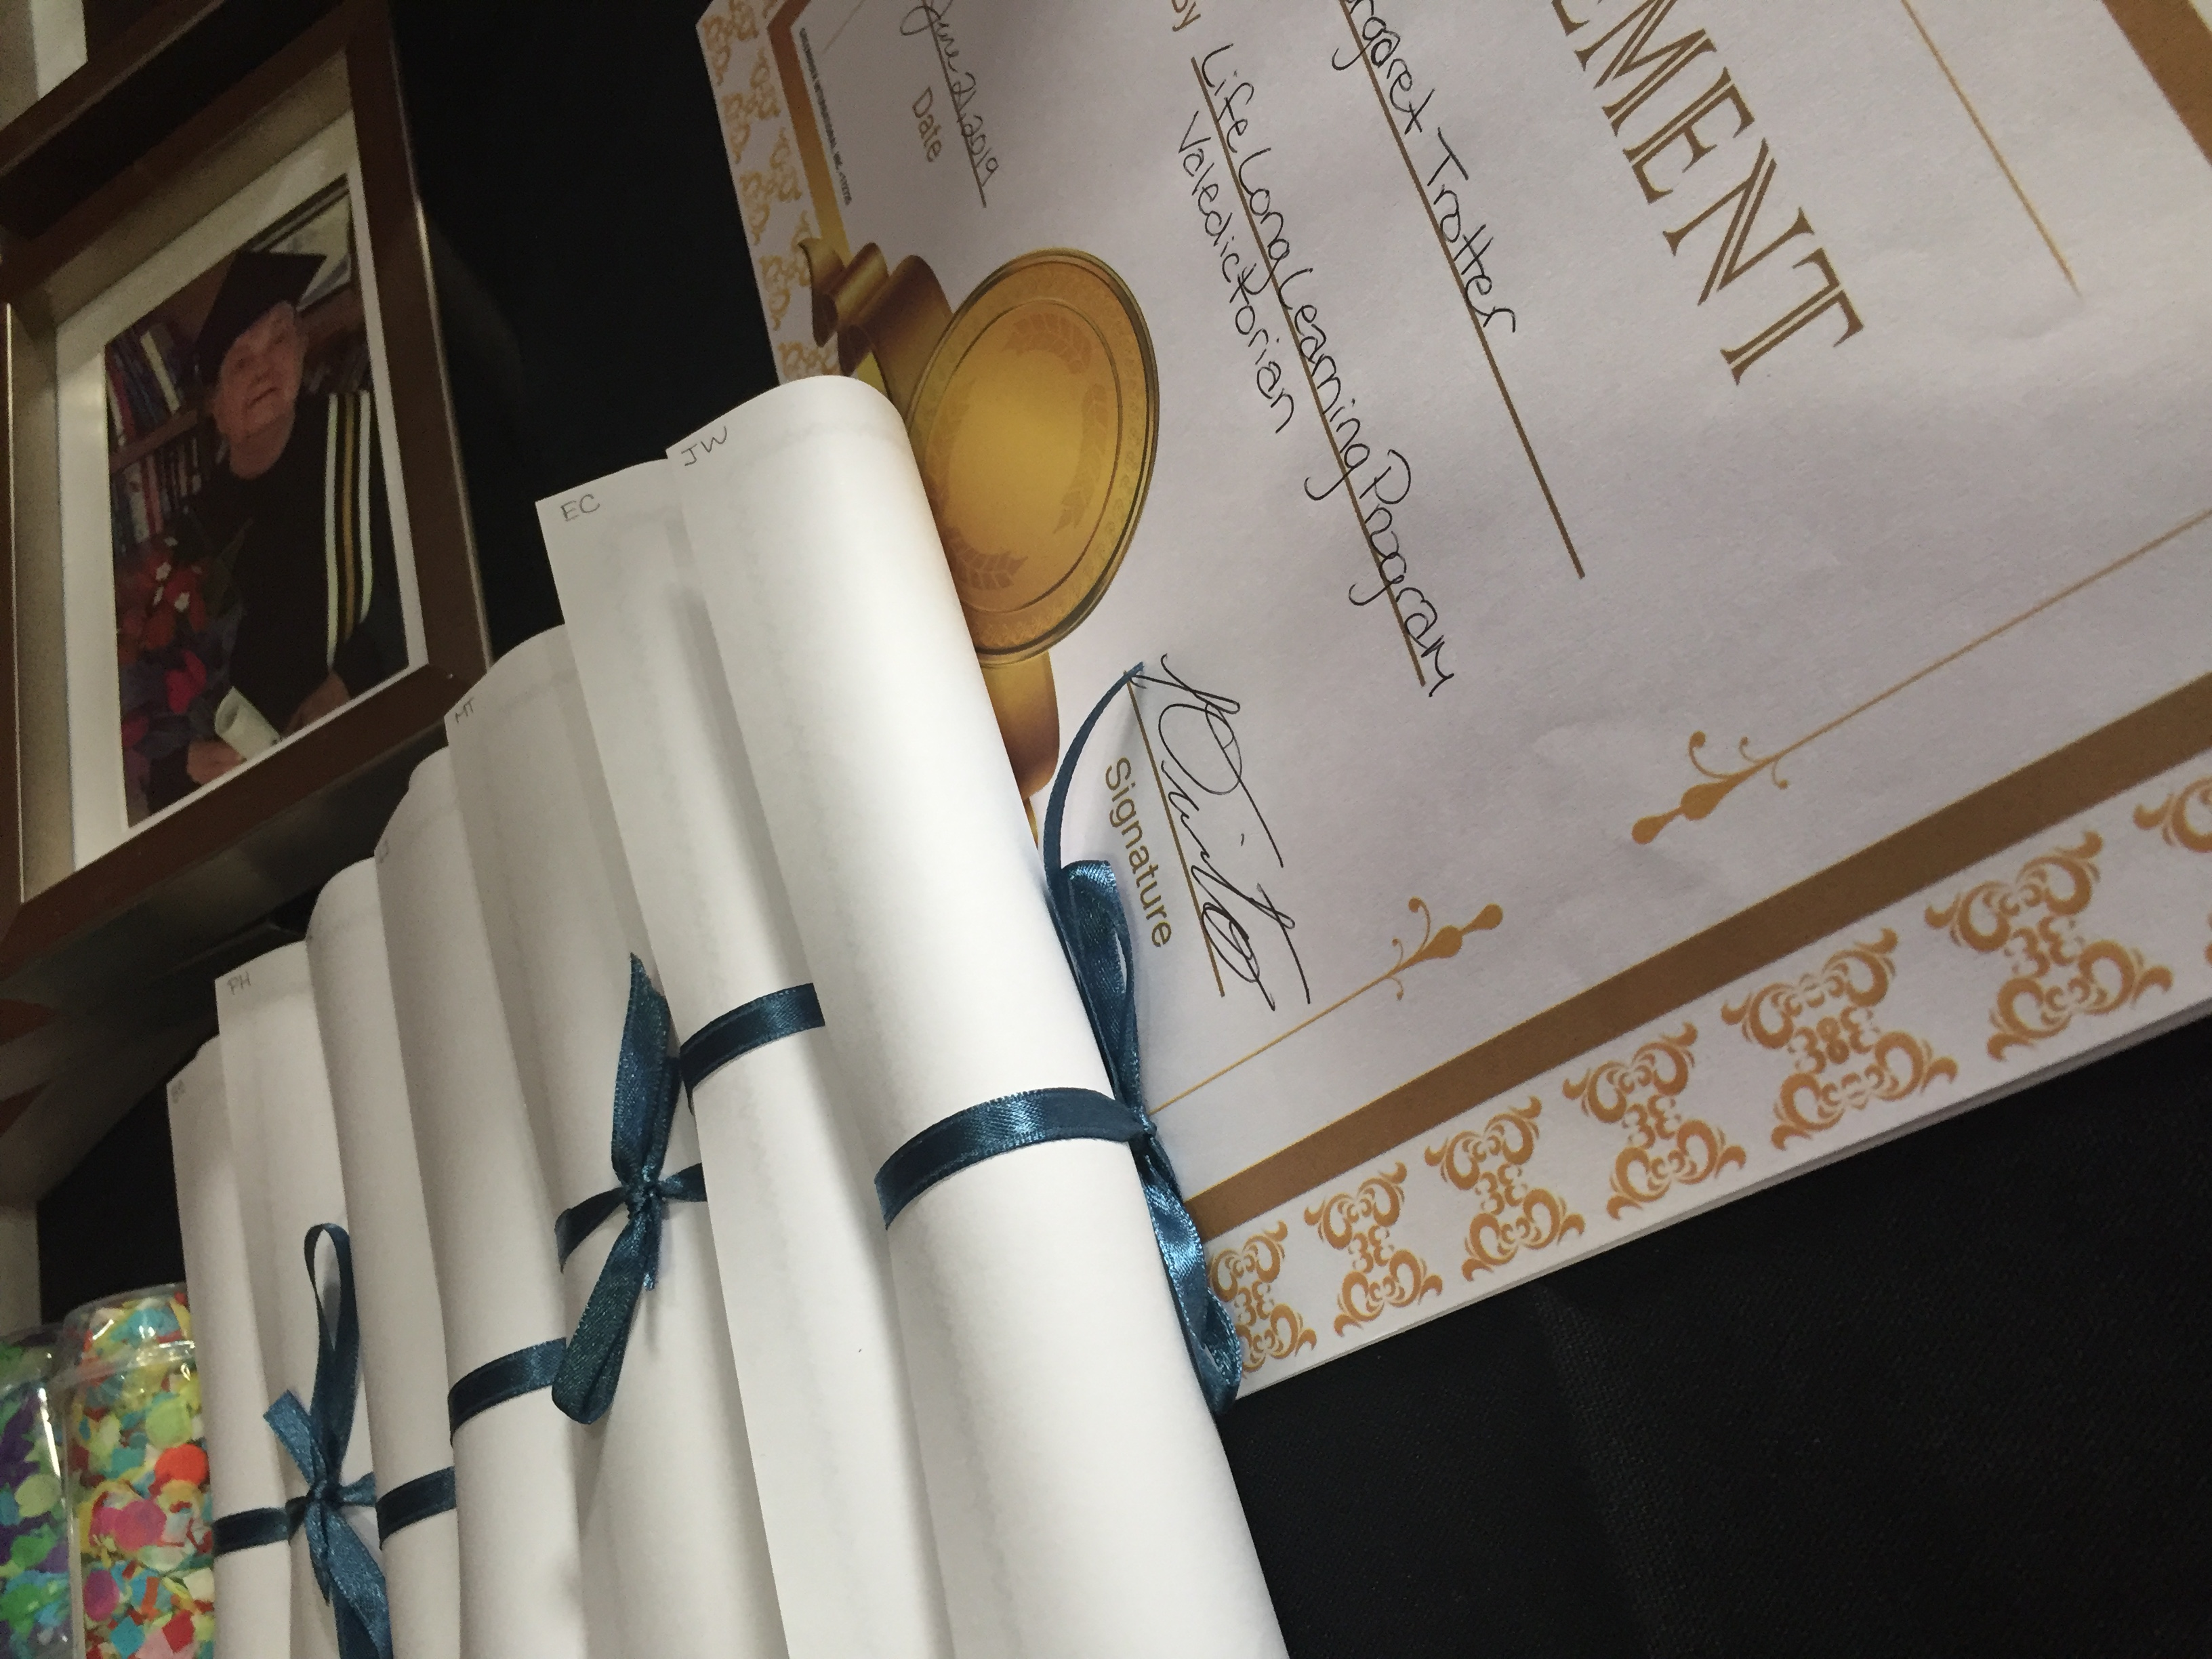 image of diplomas and grad certificates